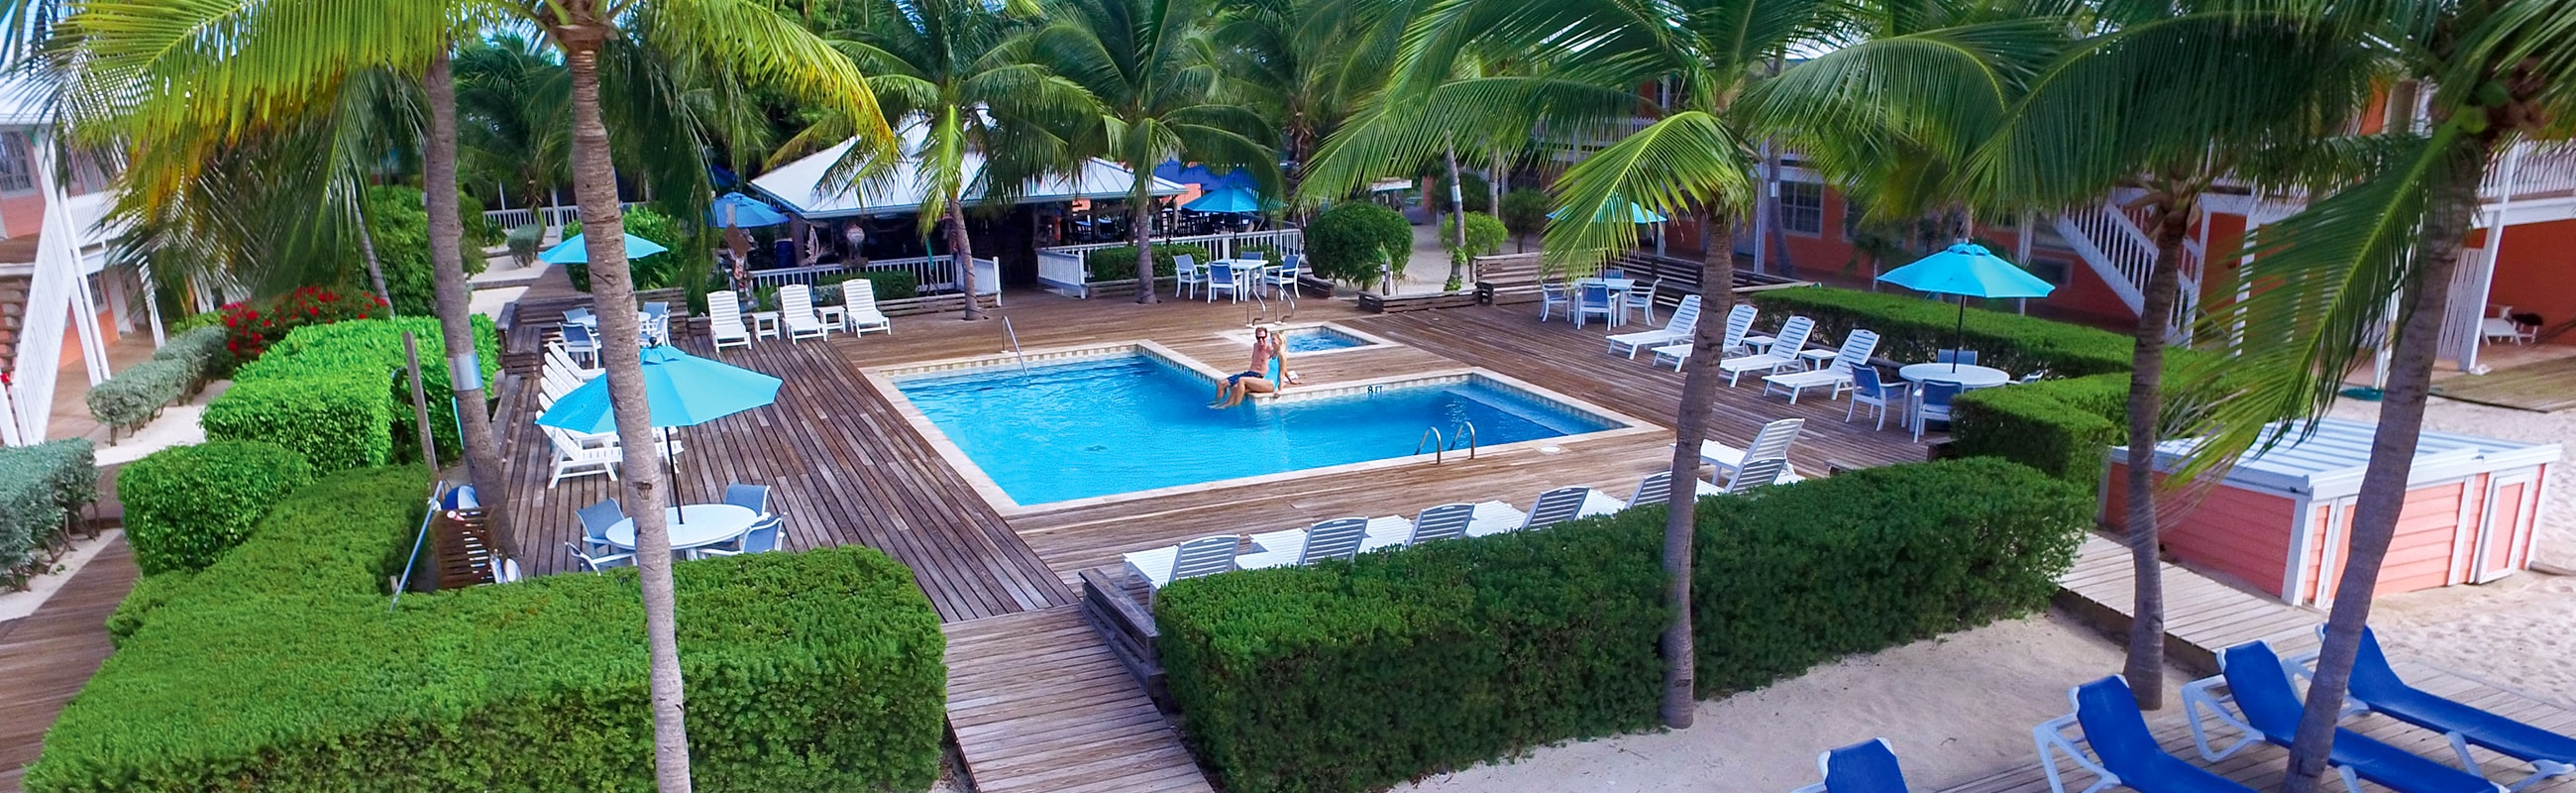 Small and intimate – our pool area is a perfect tropical oasis to enjoy after diving